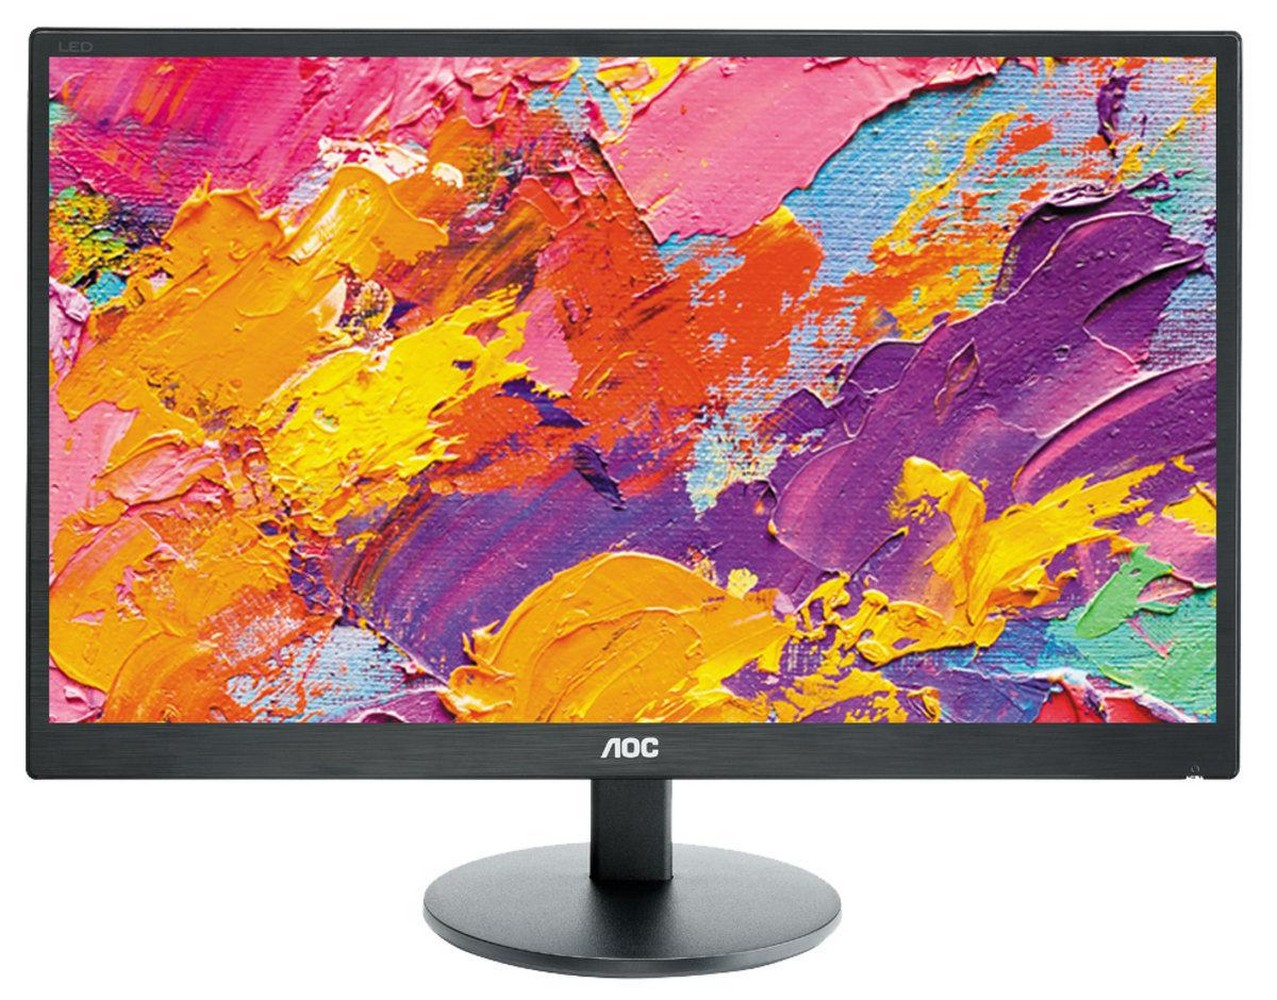 Monitor LED 23.6 Full HD (Preto Fosco) - AOC